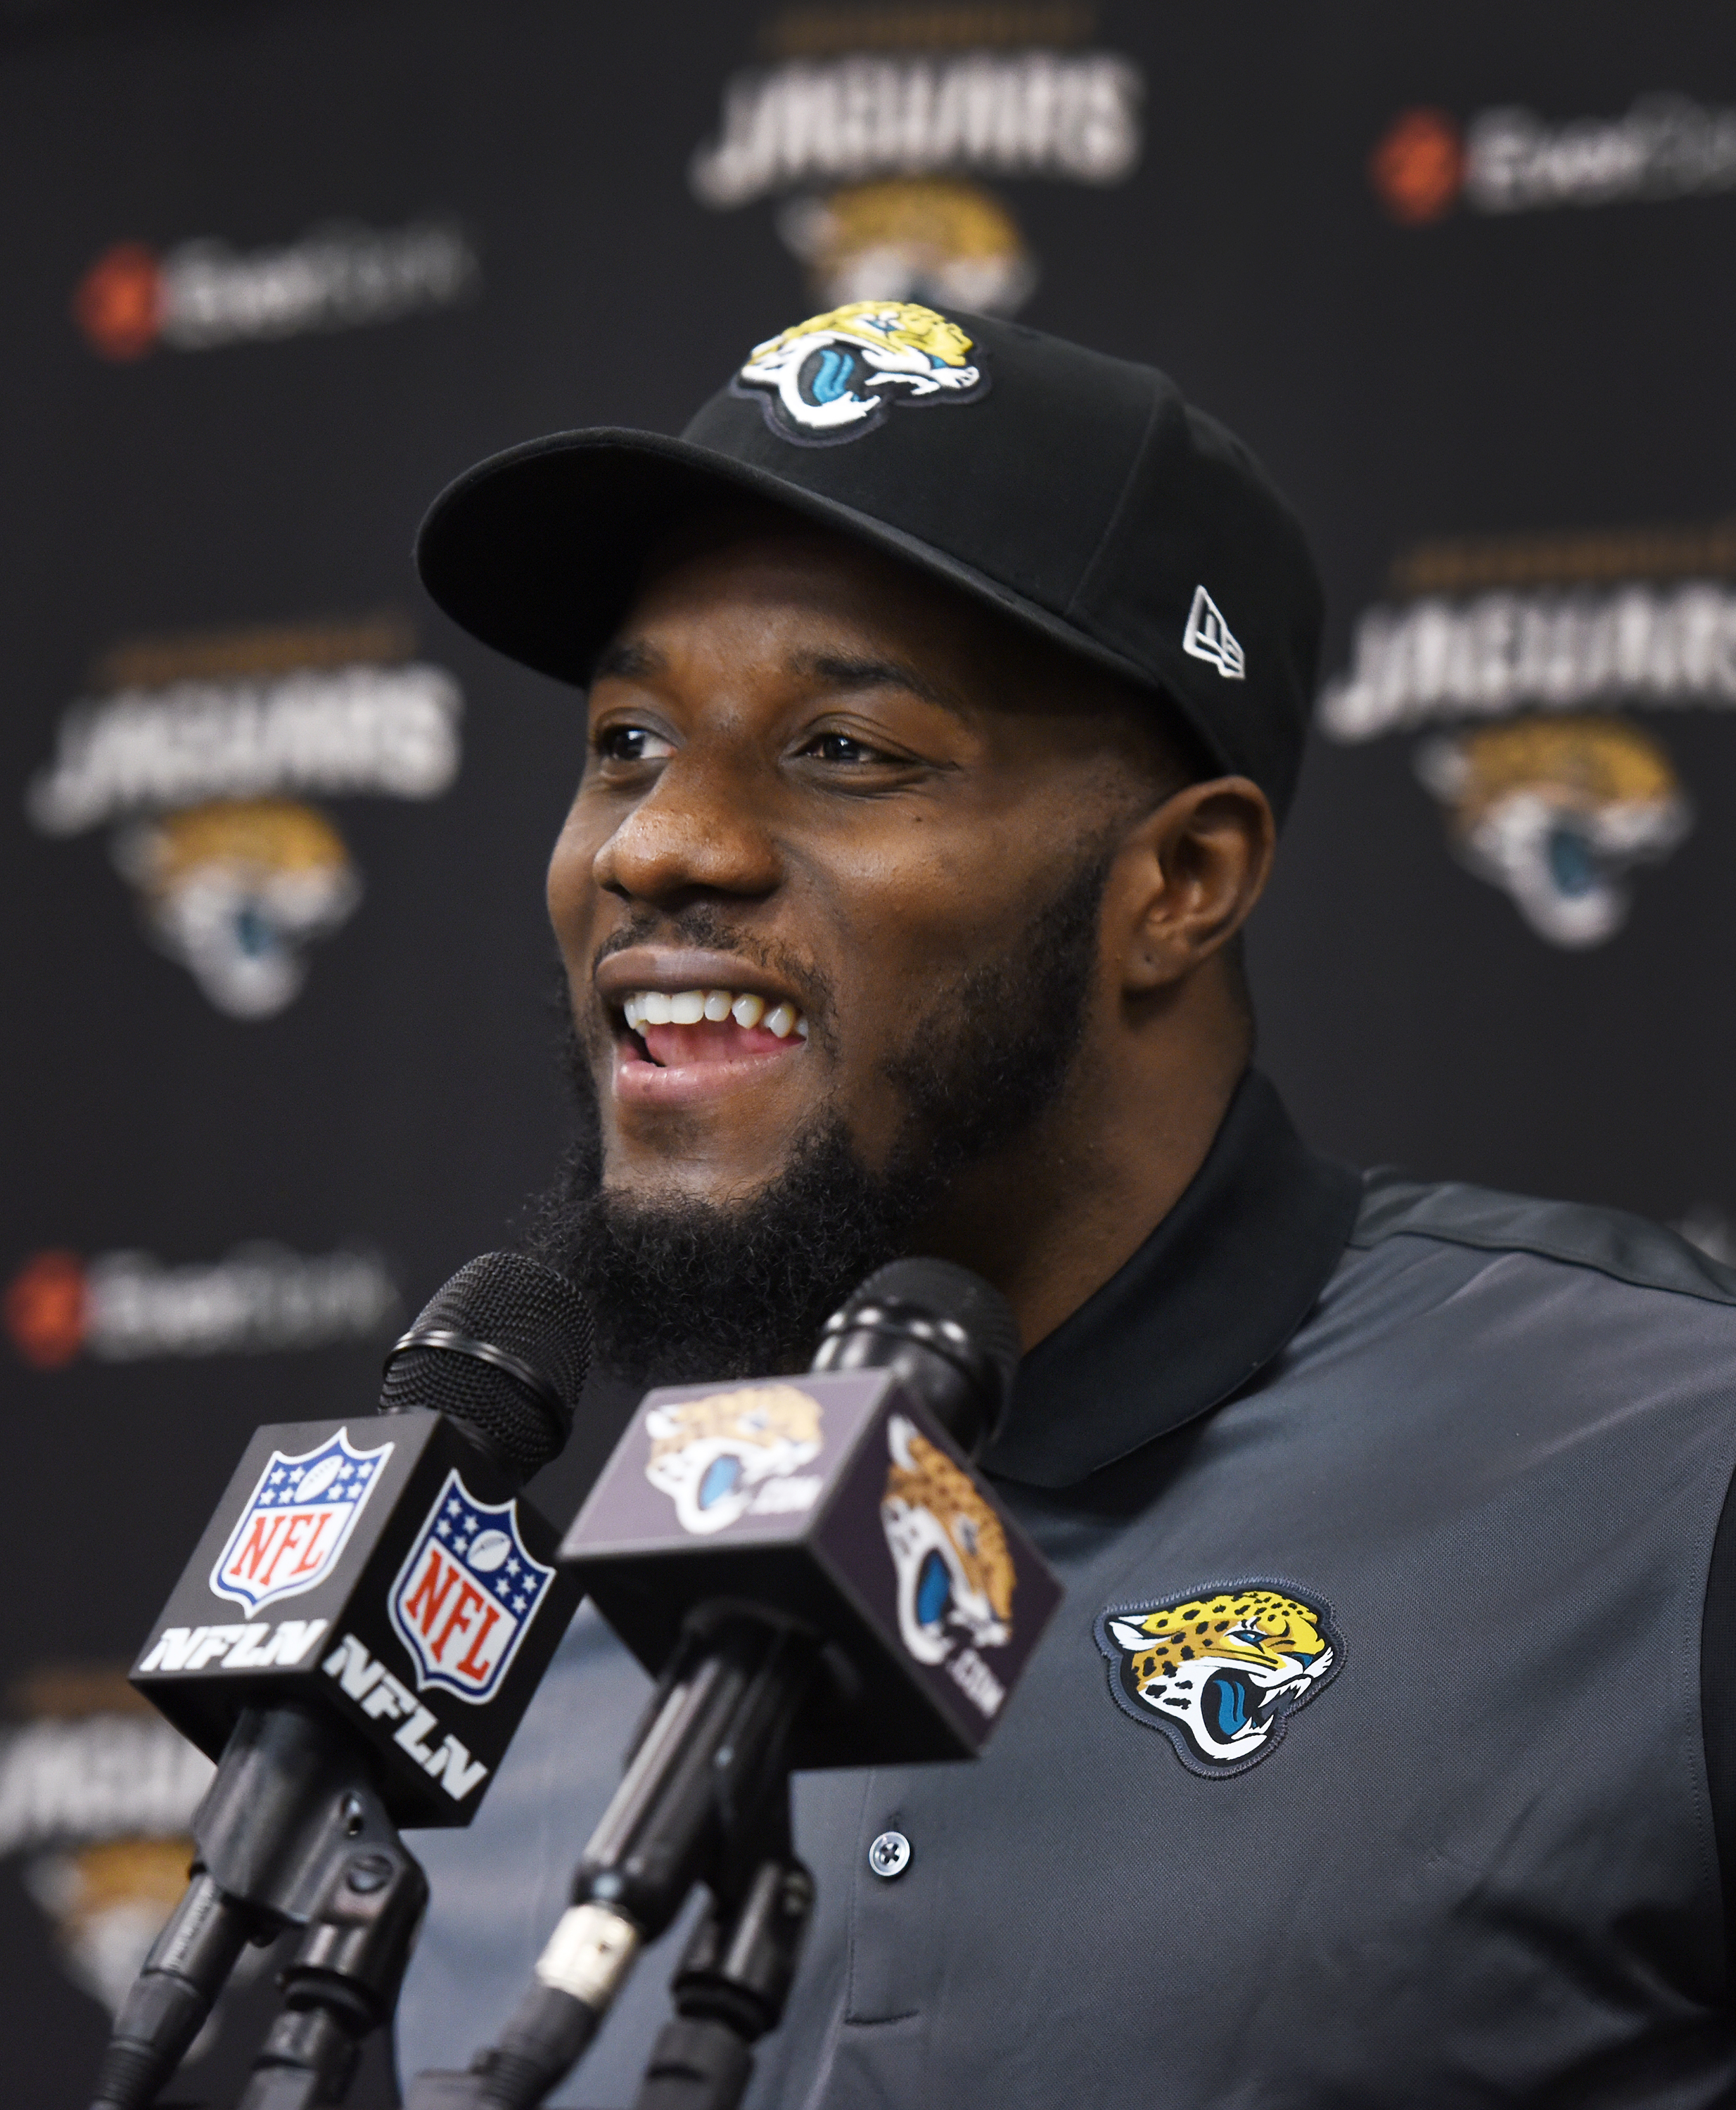 Tashaun Gipson speaks at a press conference after signing with the Jacksonville Jaguars NFL football team in Jacksonville, Fla., Thursday, March 10, 2016. Gipson, a free safety who intercepted 14 passes in four years in Cleveland, signed a five-year deal